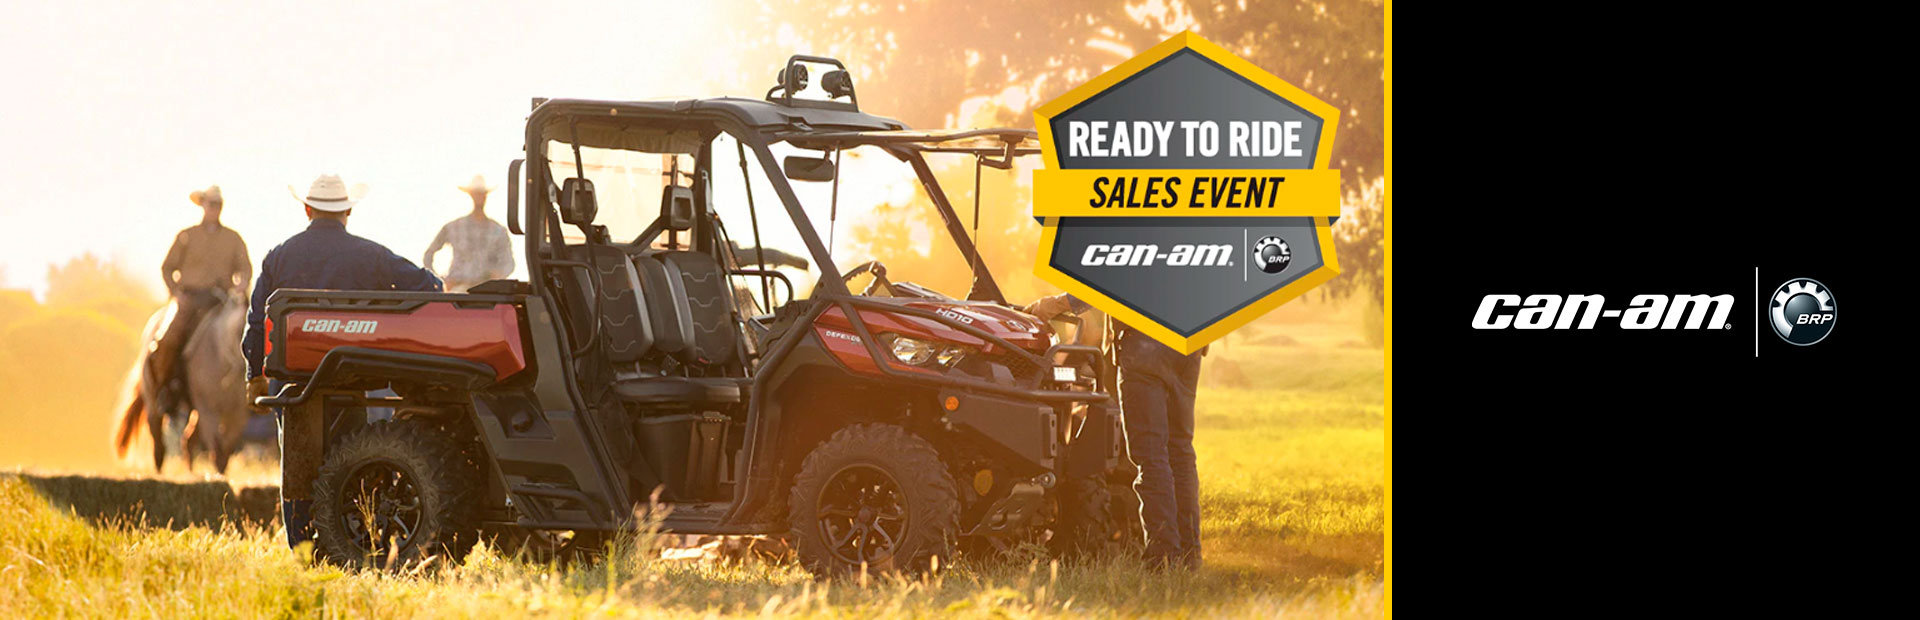 Ready to Ride Sales Event - Defender